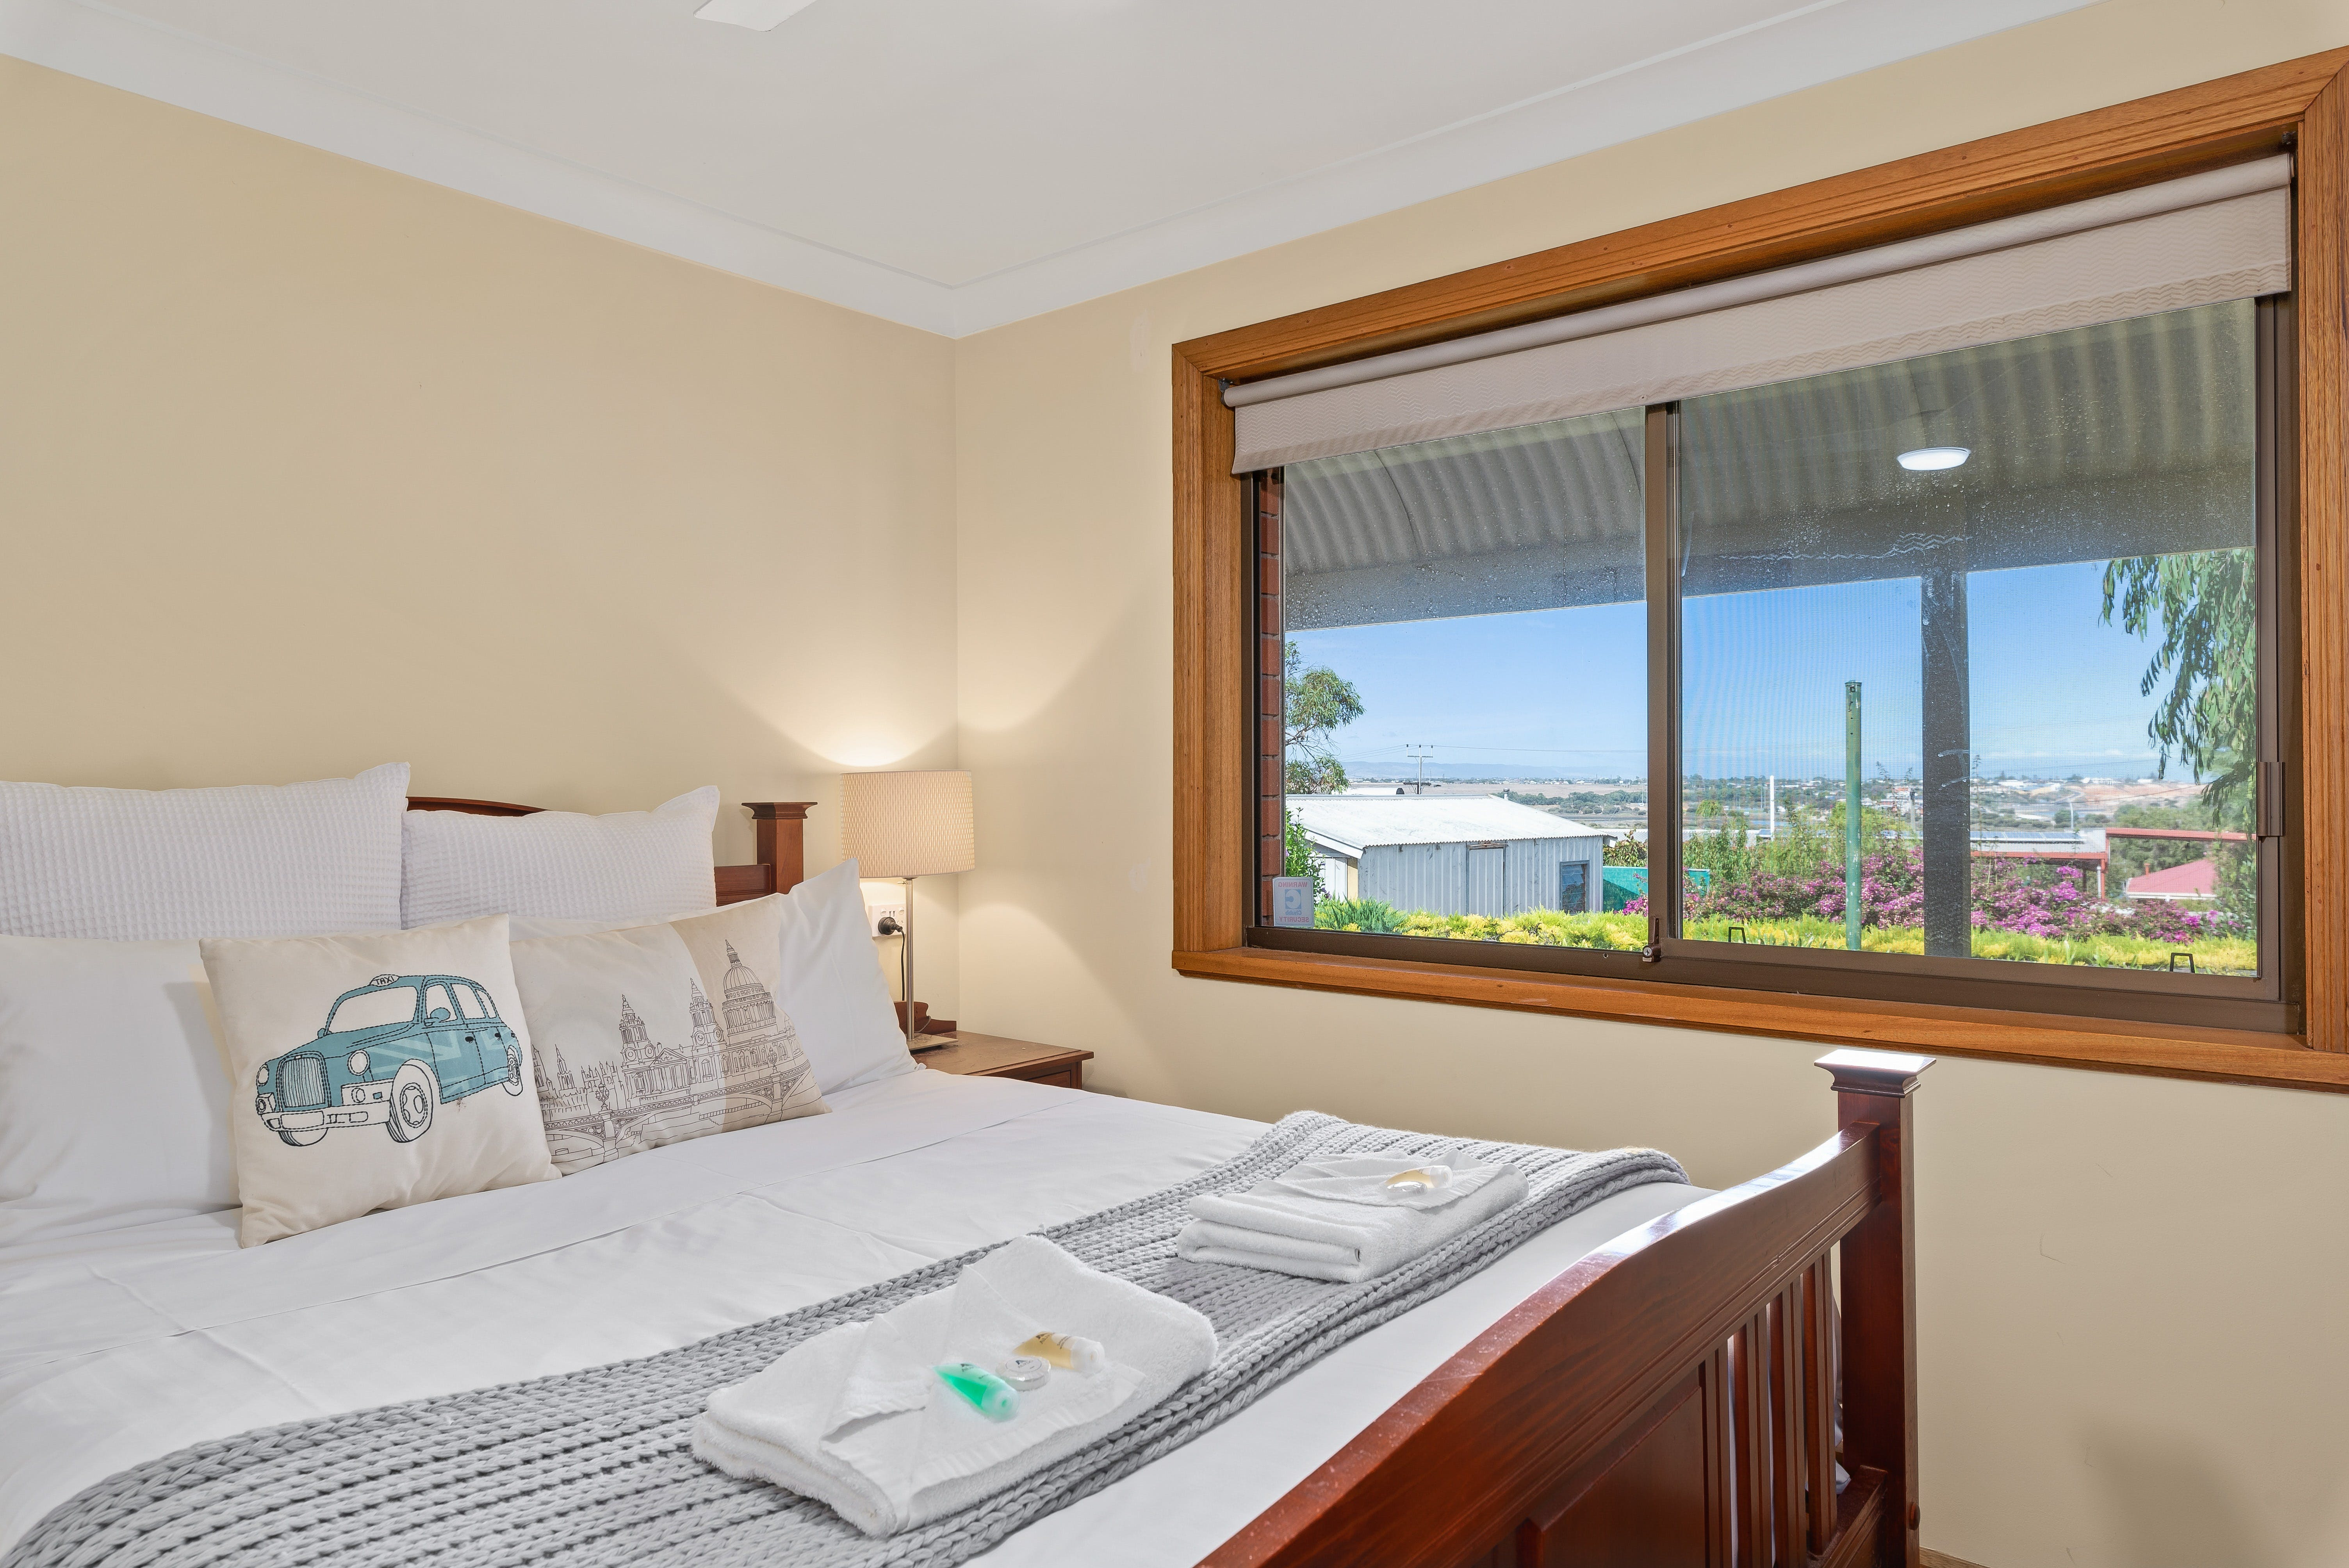 Century21 SouthCoast Reef  Vines Port Noarlunga - Accommodation Daintree